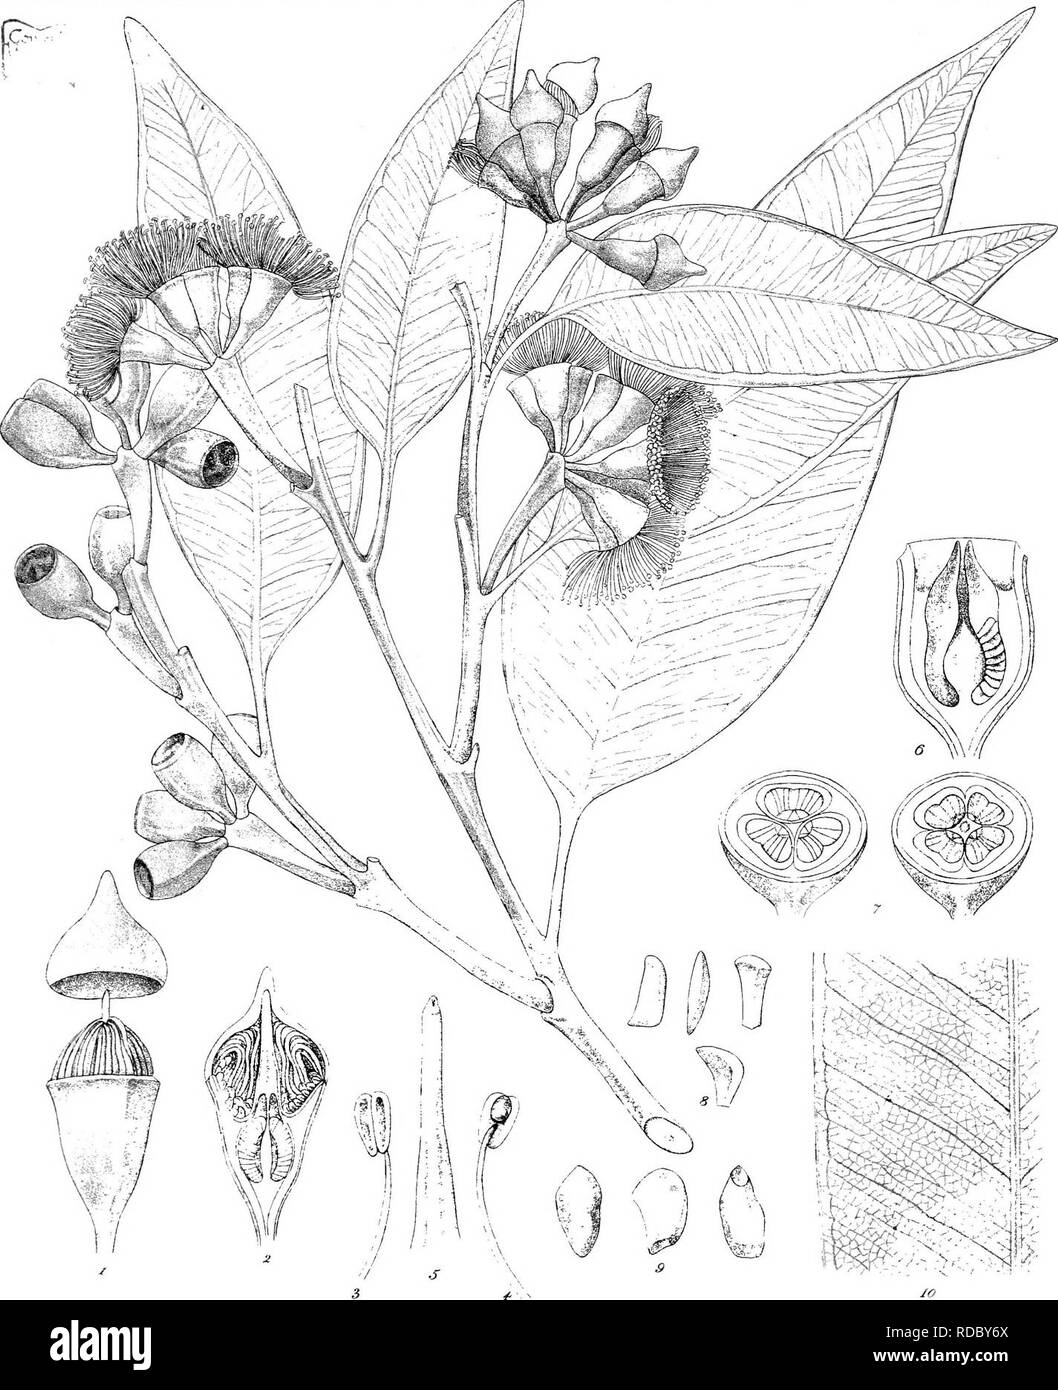 ". Eucalyptographia. A descriptive atlas of the eucalypts of Australia and the adjoining islands;. Eucalyptus; Botany. :caiae:.:TKei£:s.:-Li>K r^""T l iipsxi^ Steam Litlio GoTr.PrmlmgOffioe.MeH)- Si(giili